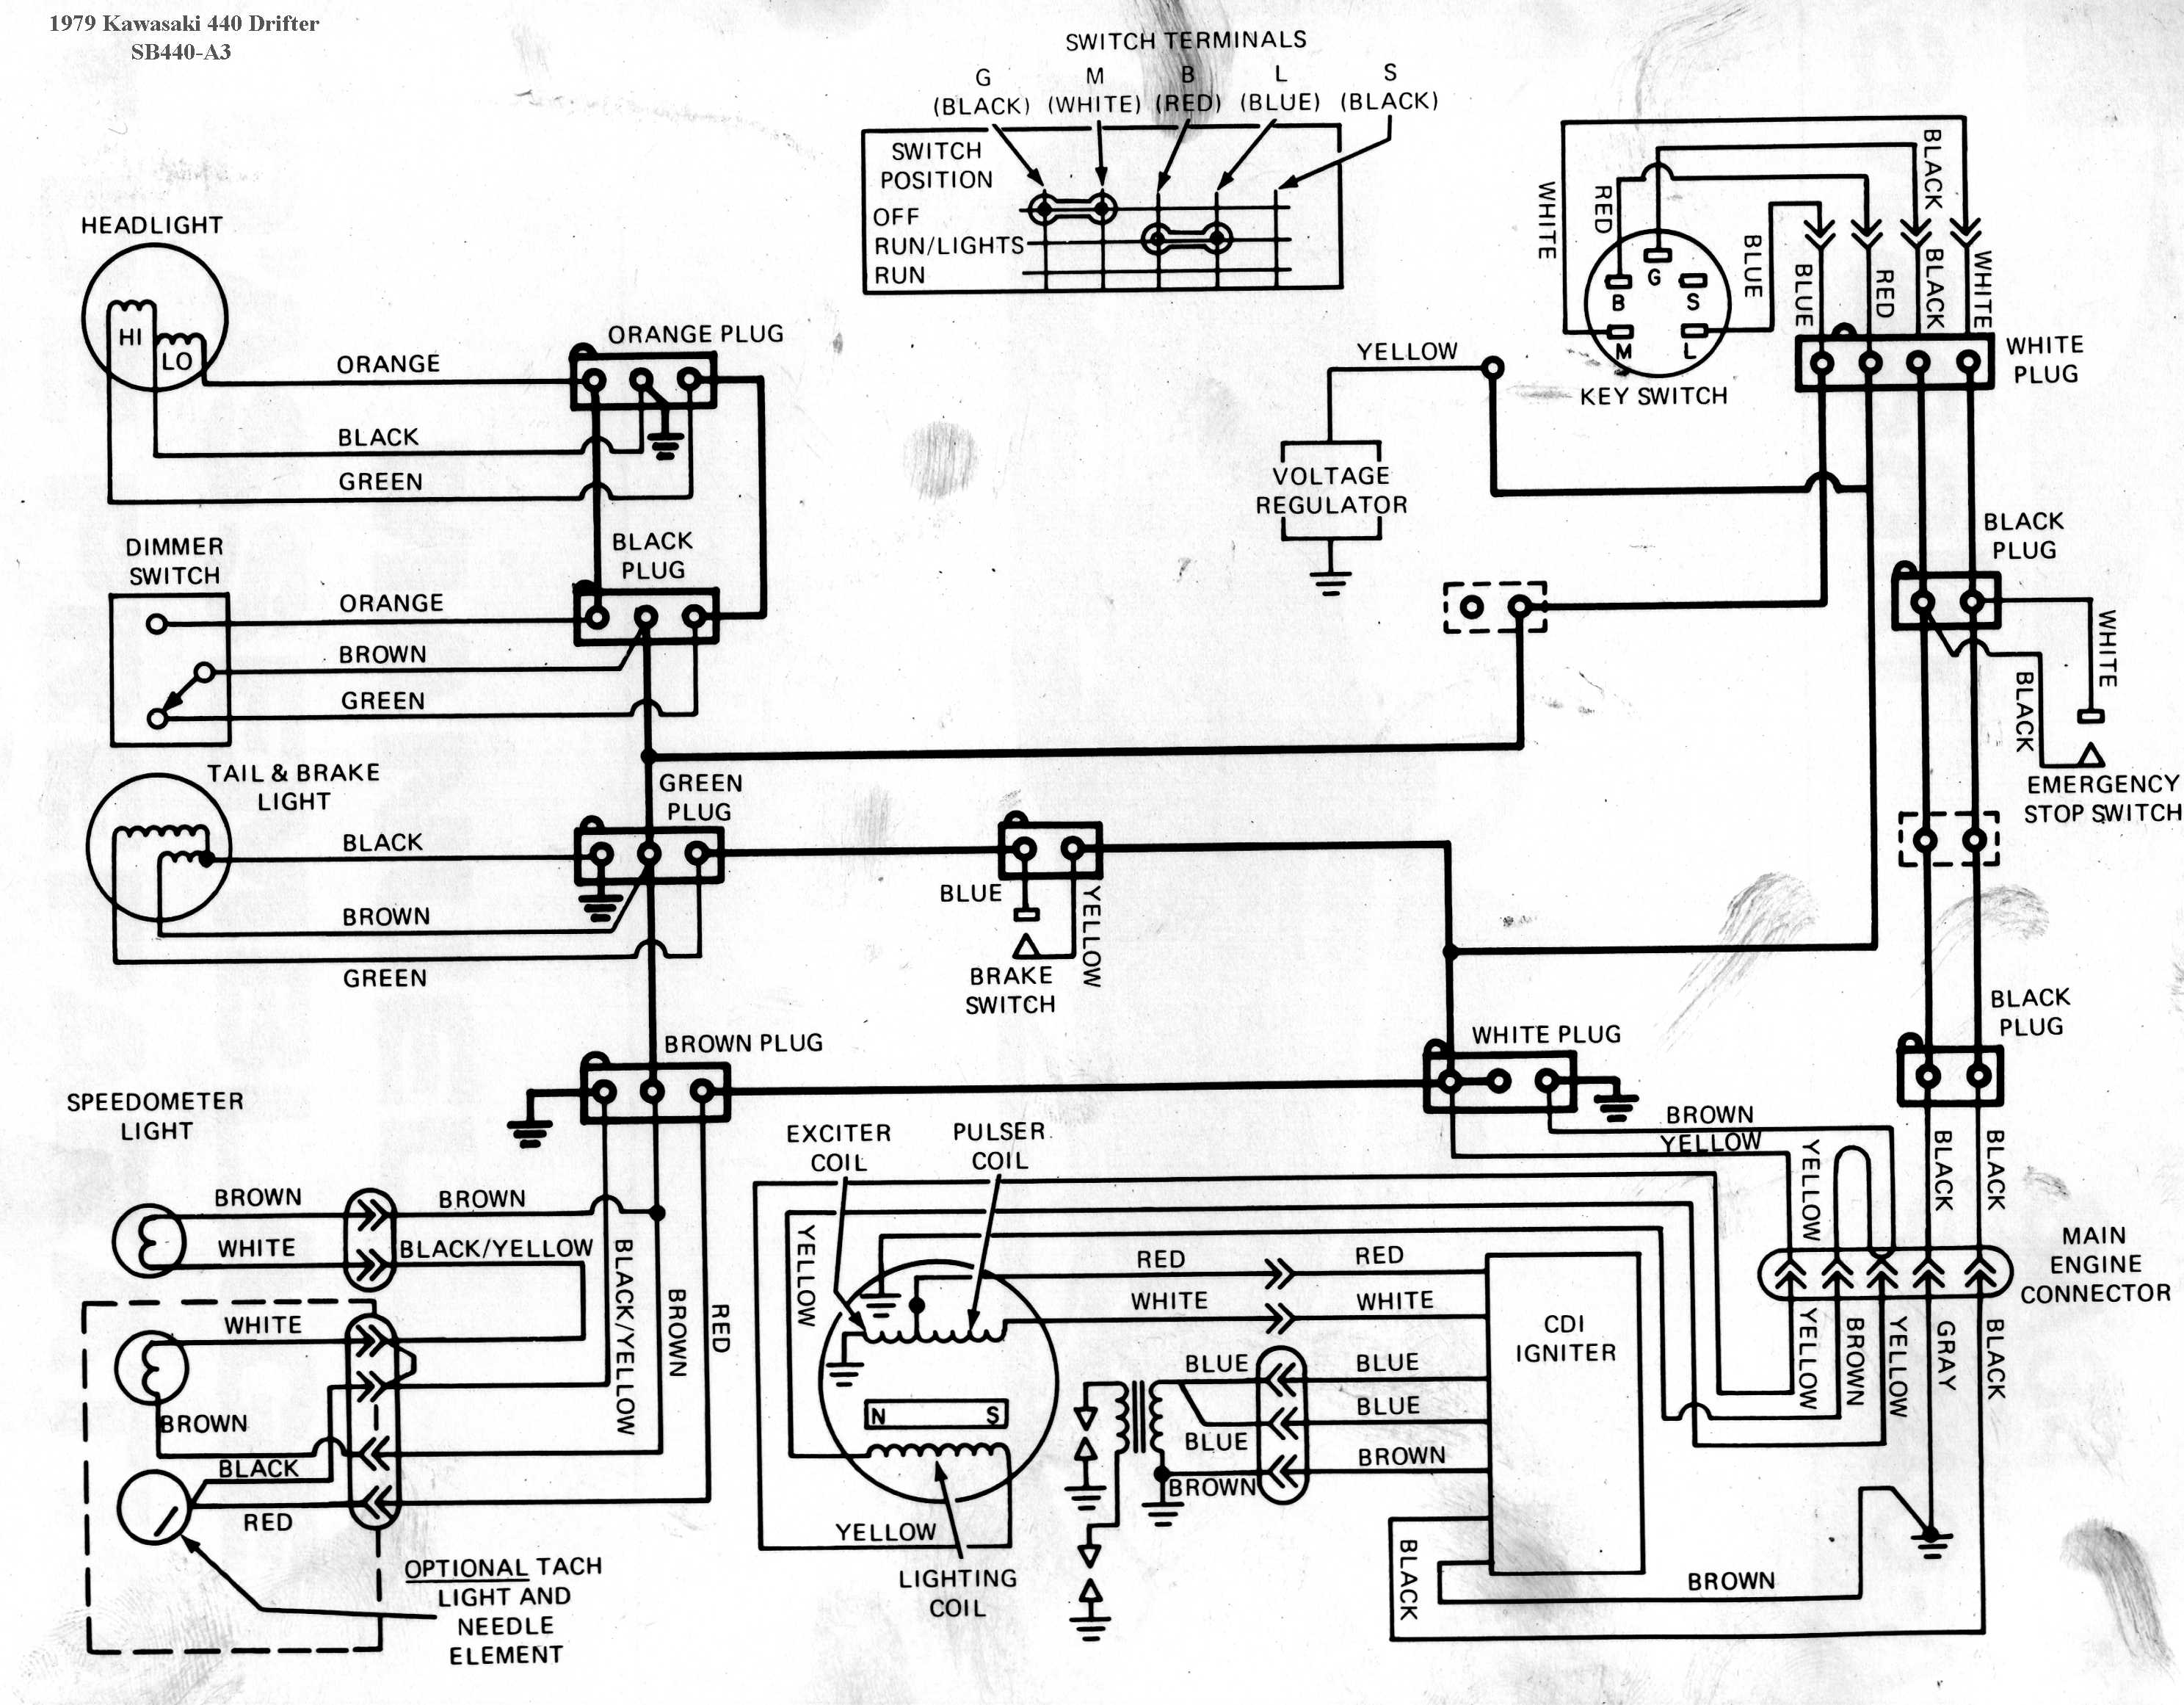 vulcan 800 ignition diagram · kawasaki drifter wiring diagrams